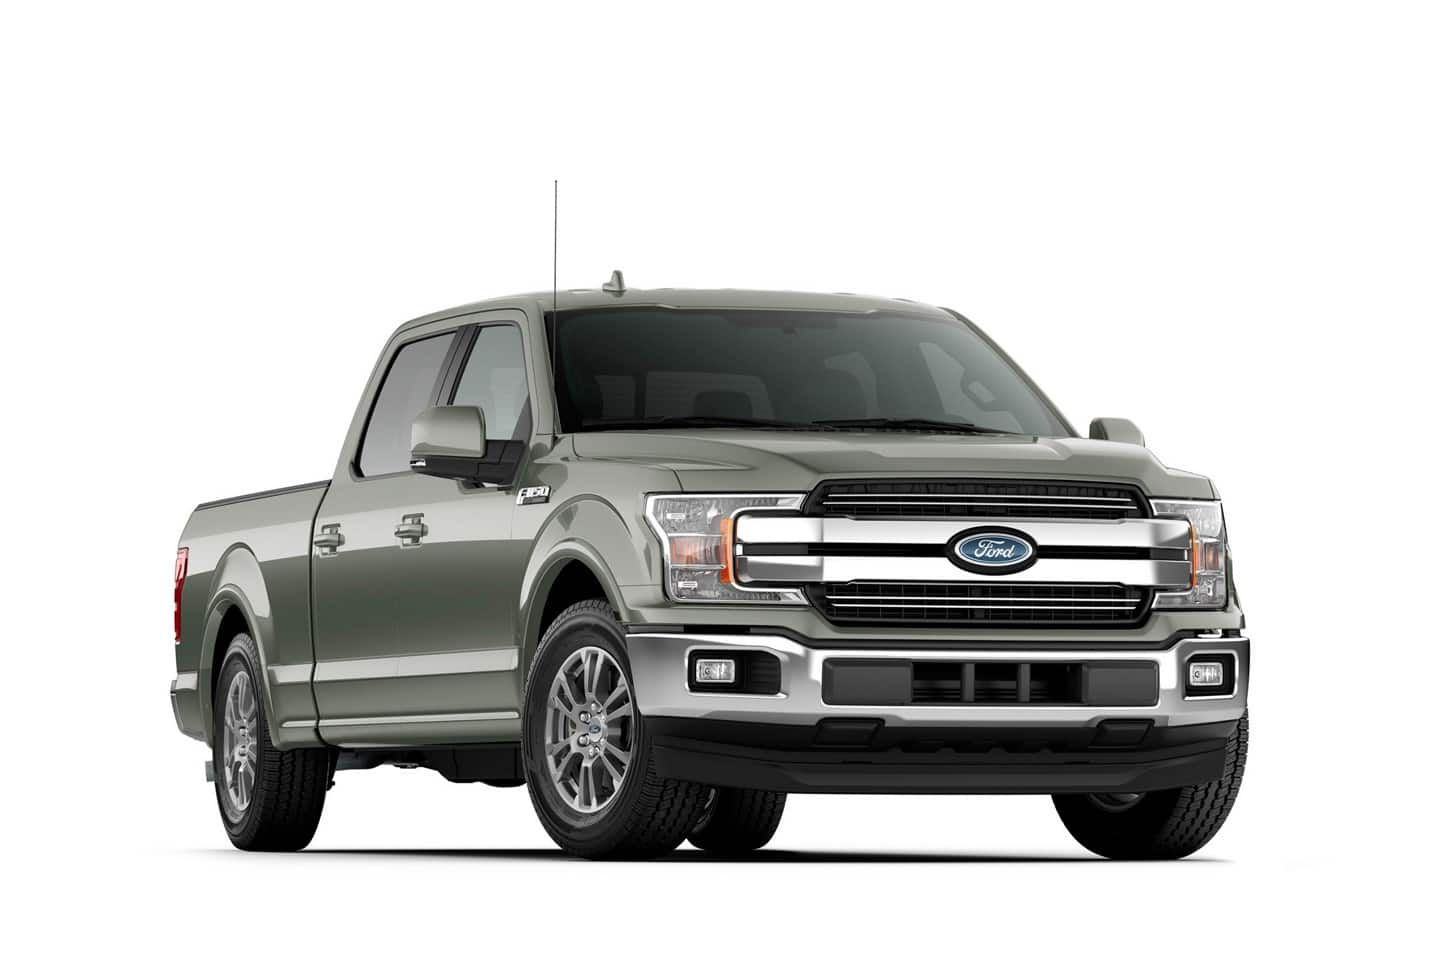 79 Gallery of The Ford Lariat 2019 Performance Performance by The Ford Lariat 2019 Performance